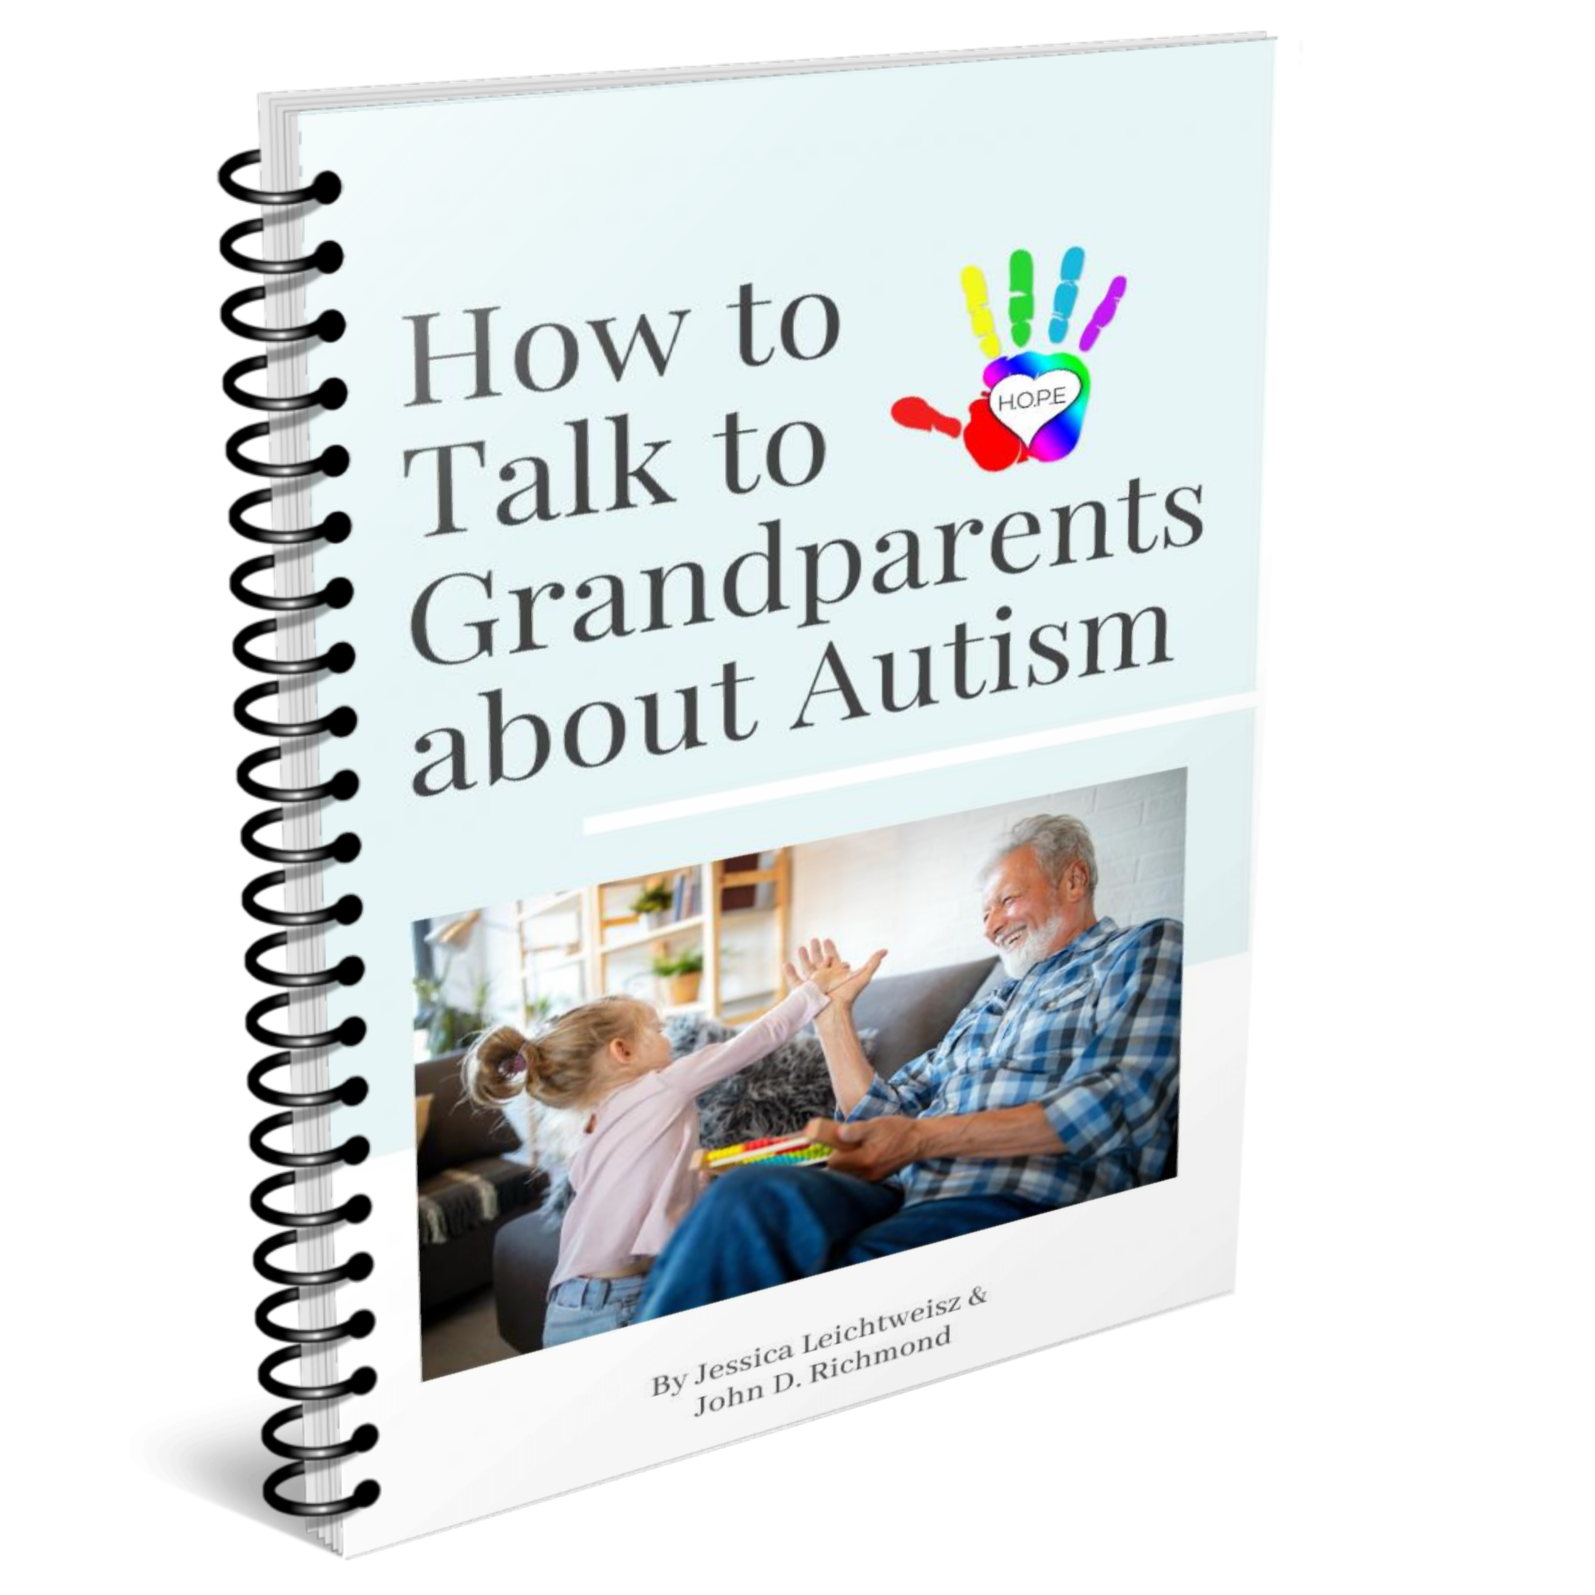 How to Talk to Grandparents About Autism